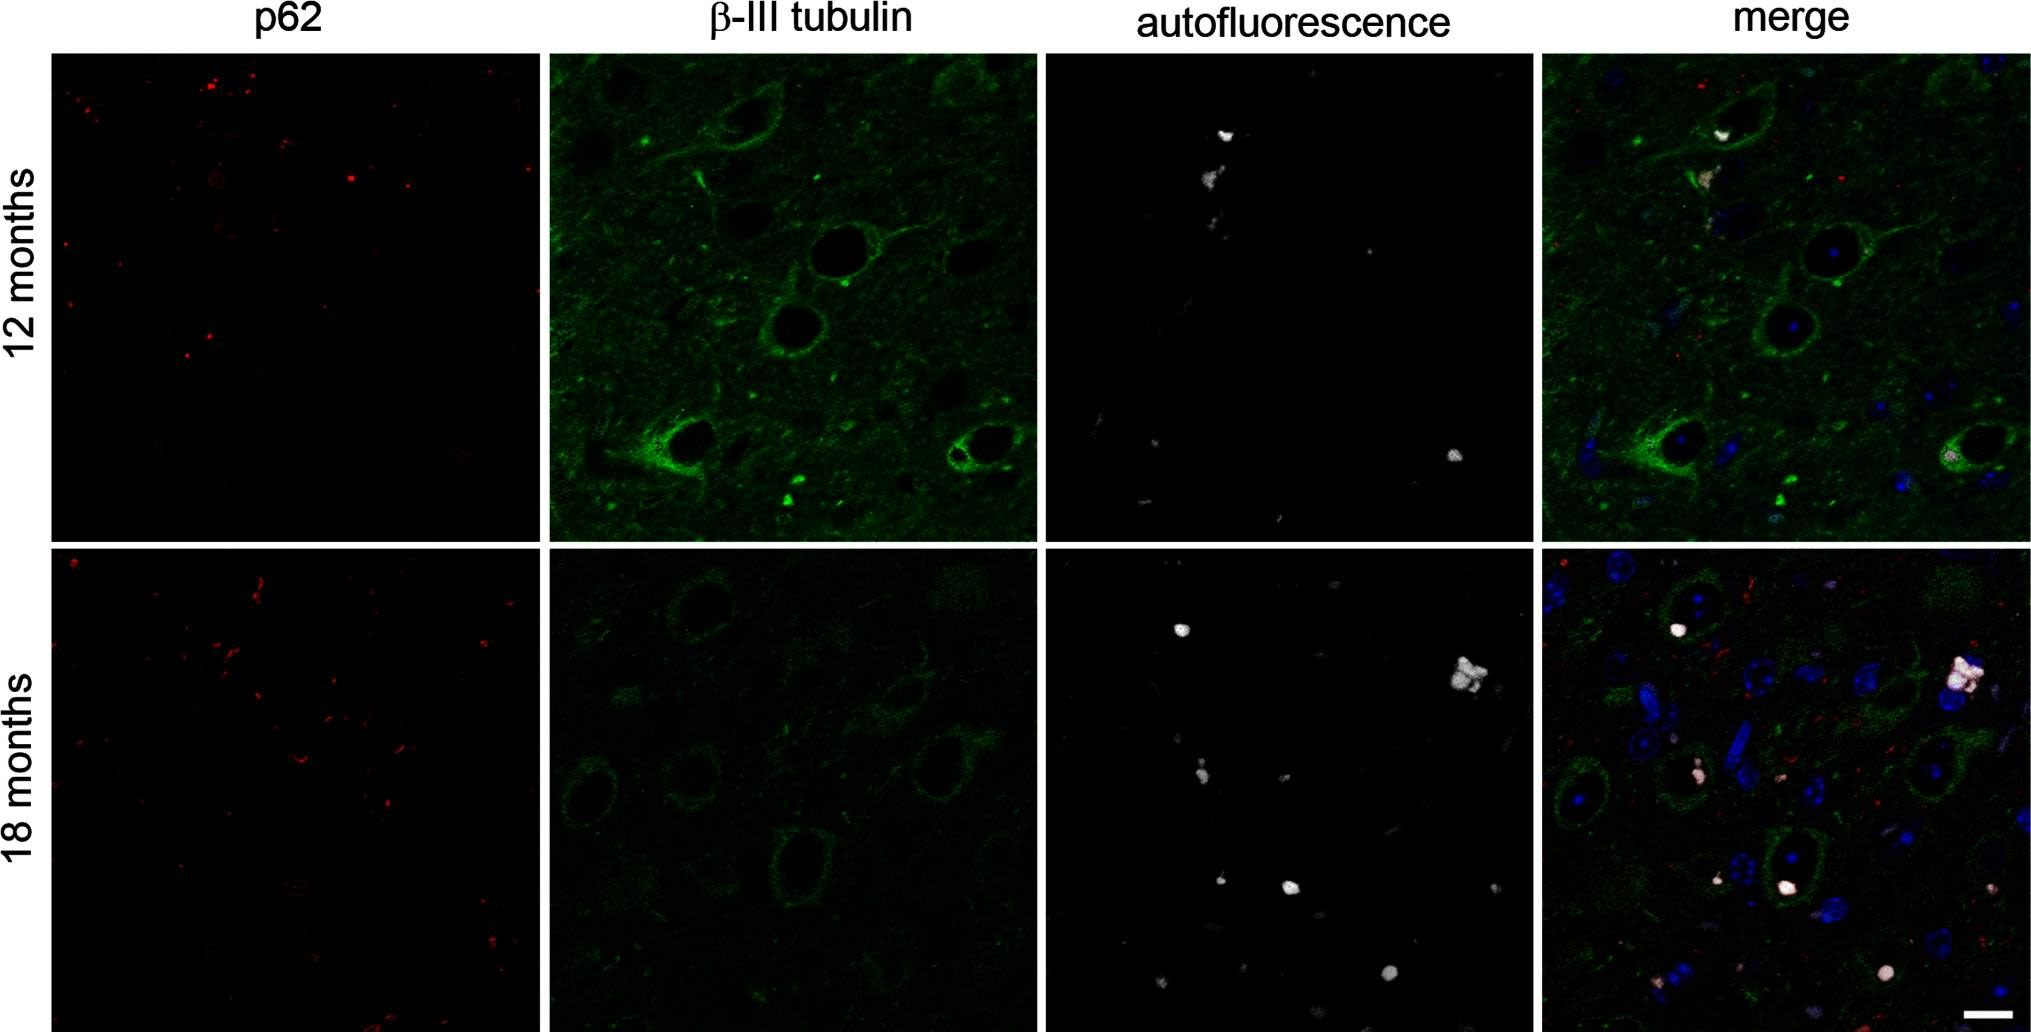 Frontotemporal dementia caused by CHMP2B mutation is characterised by neuronal lysosomal storage pathology.